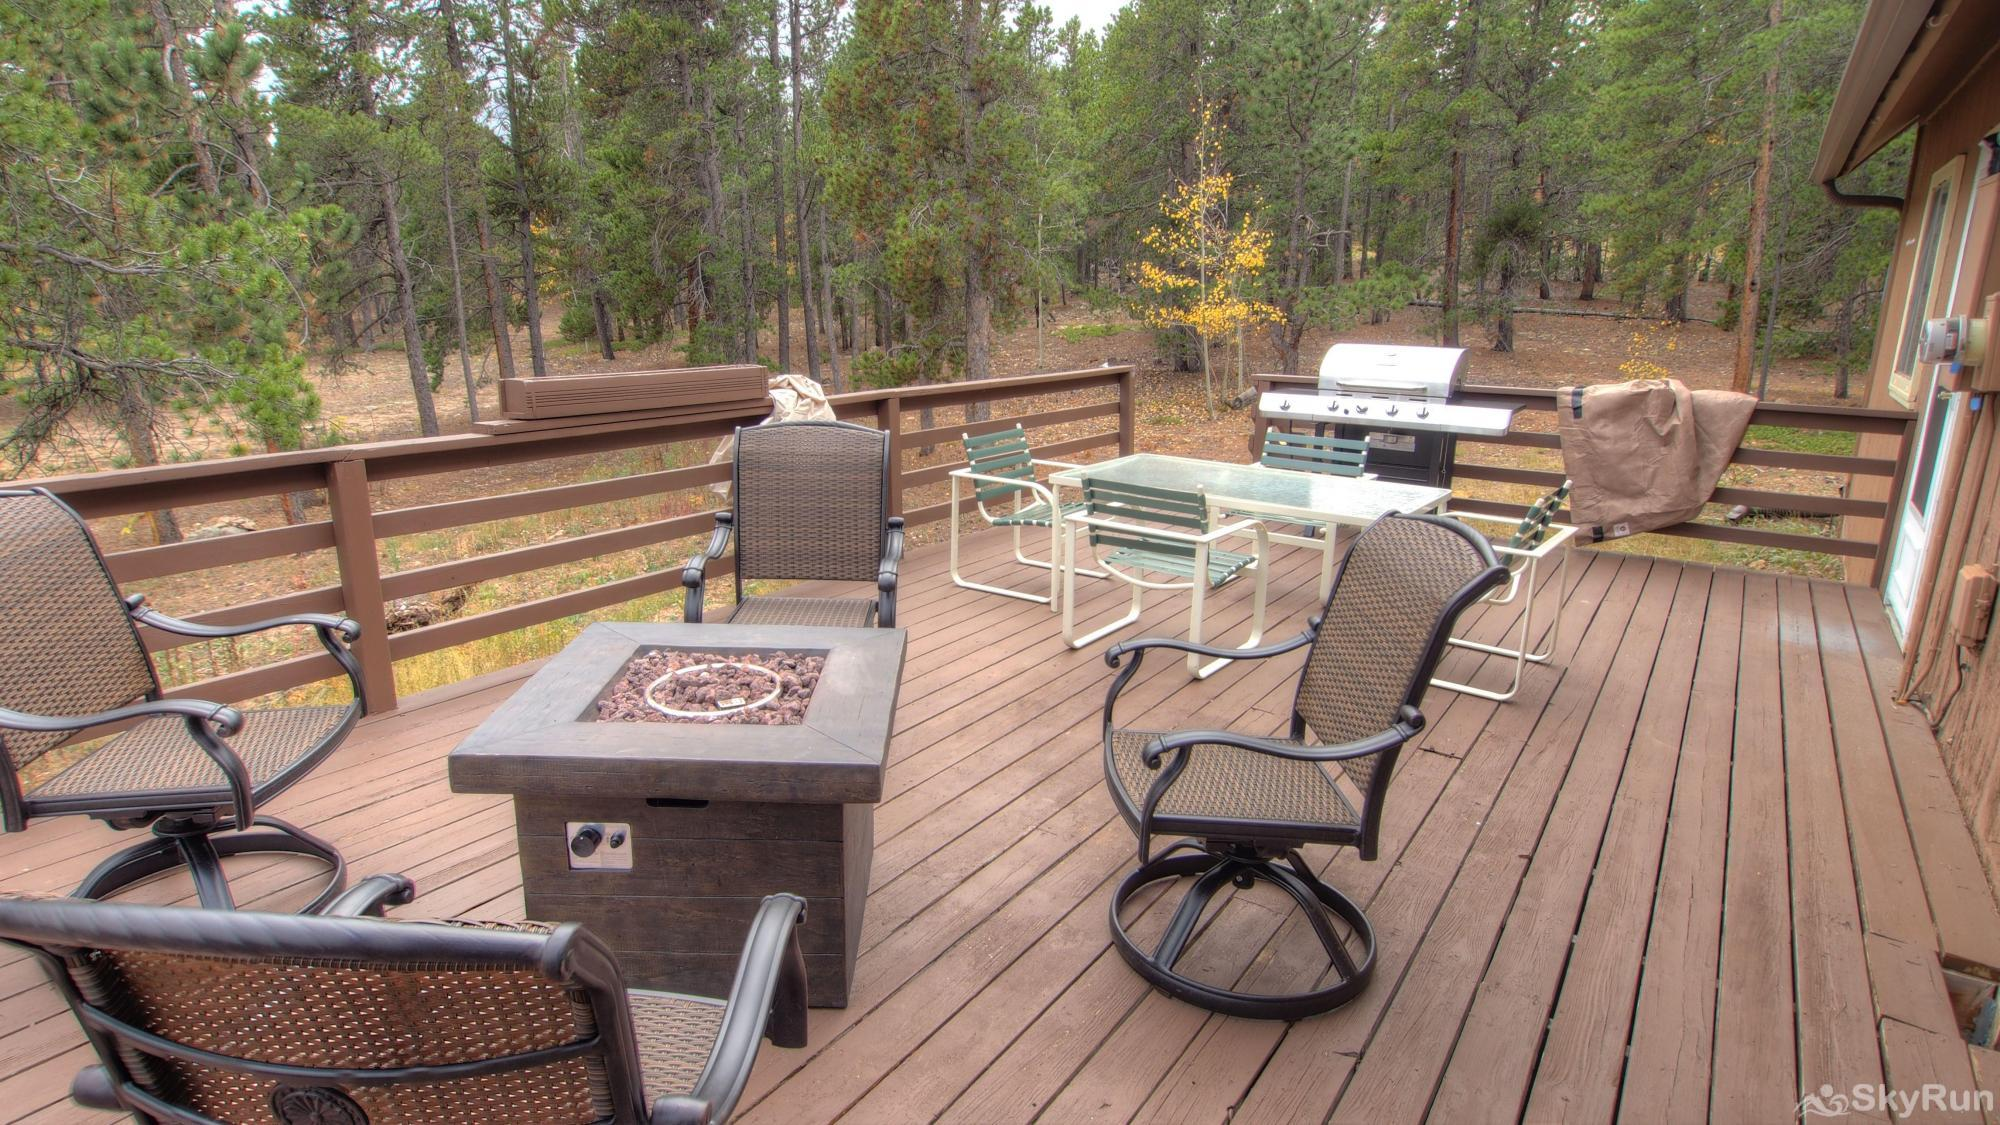 Dory Lakes Cabin New Deck Furniture - Fire Pit and large Grill